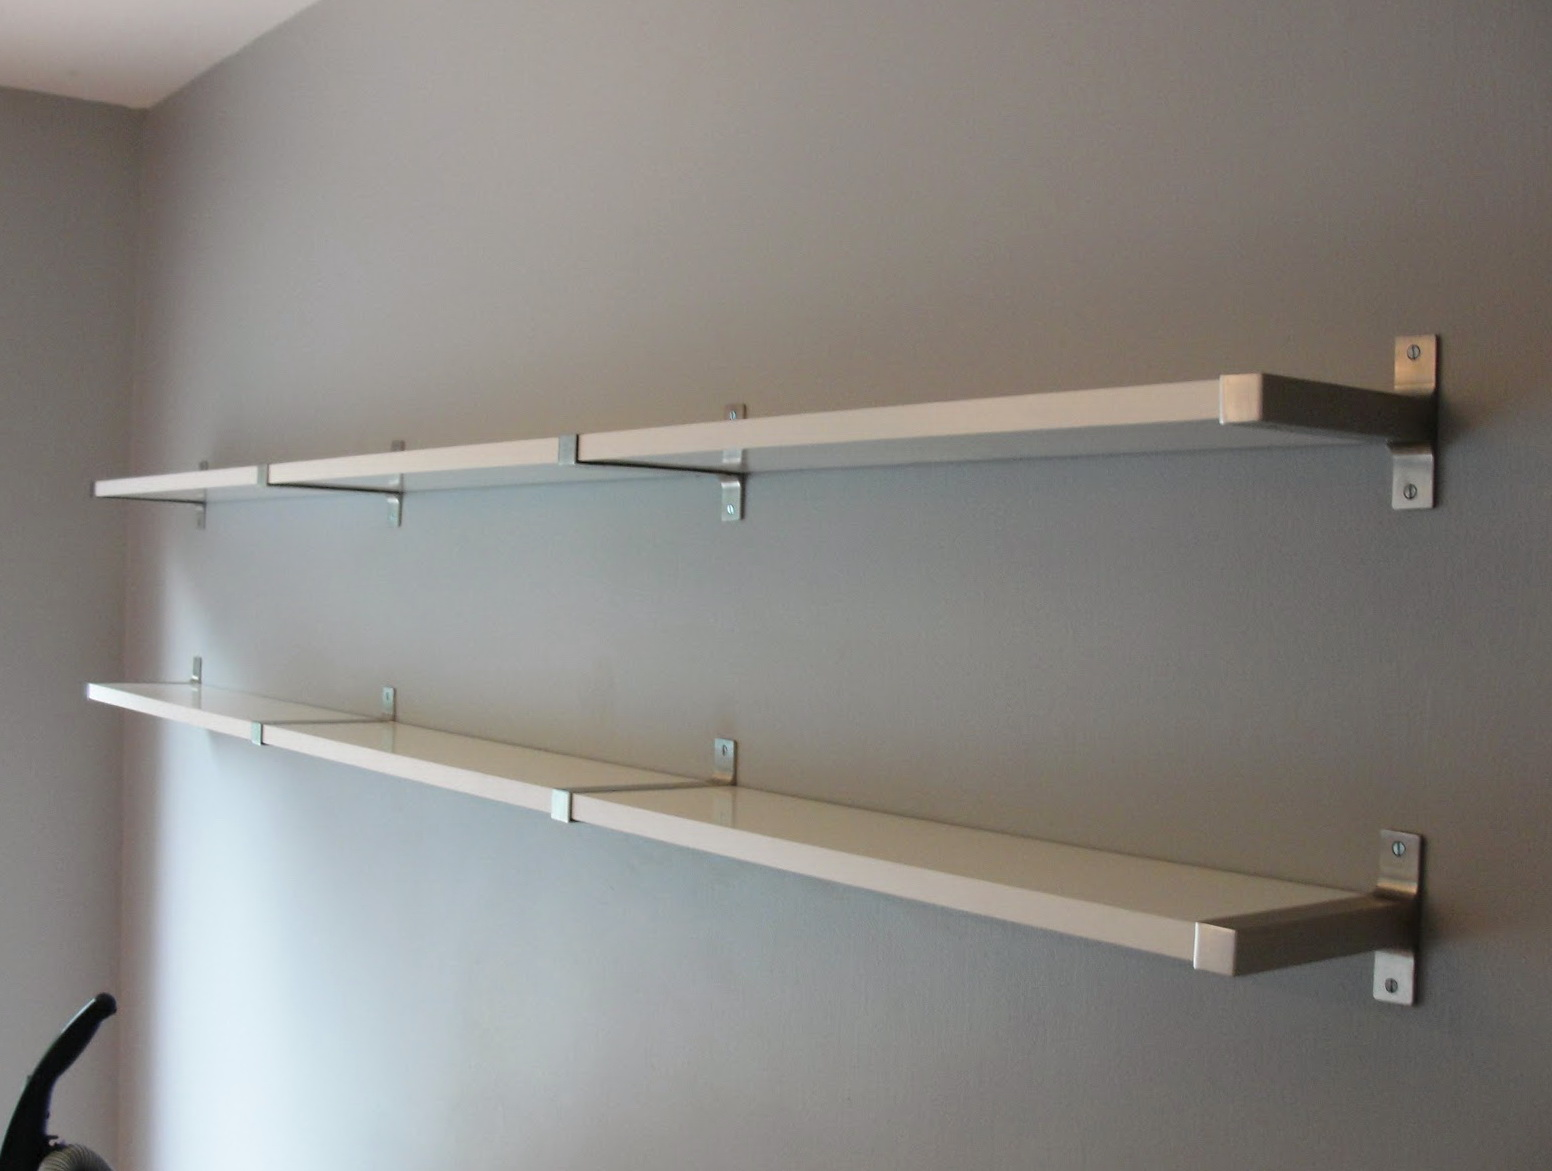 How To Install Shelves On Wall